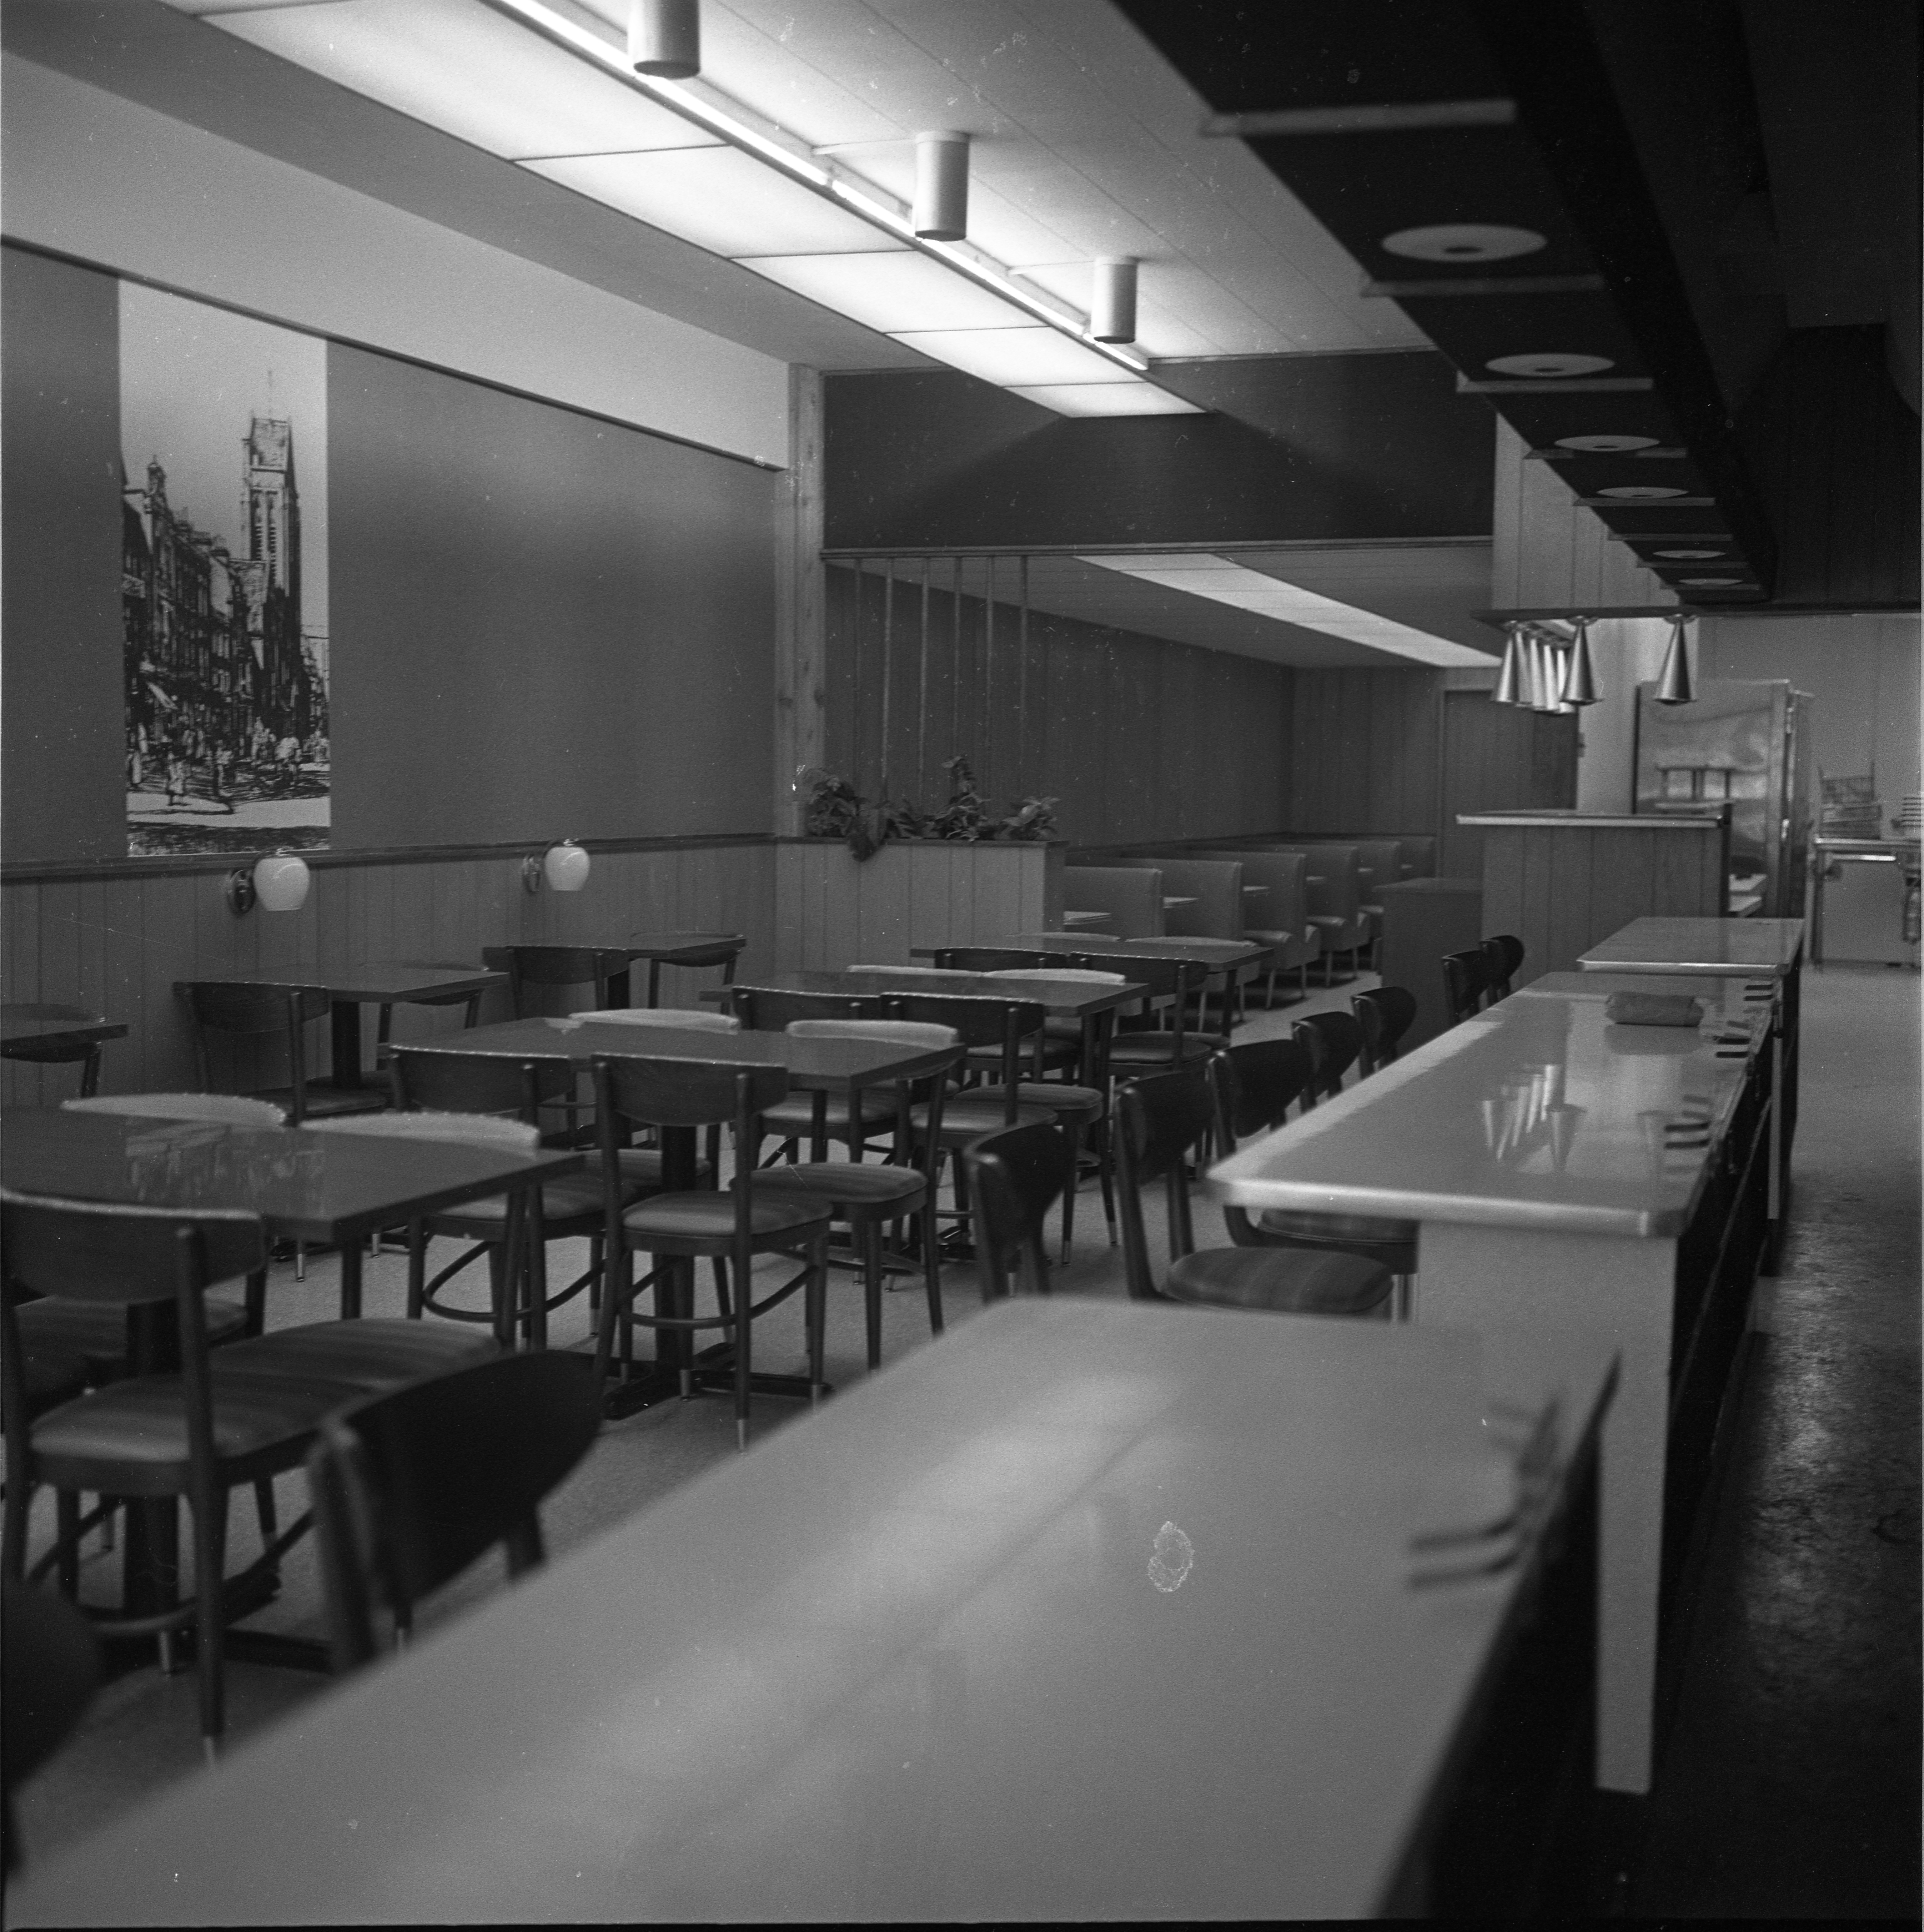 Interior Of The Lamplighter Restaurant For Advertisement, August 1964 image